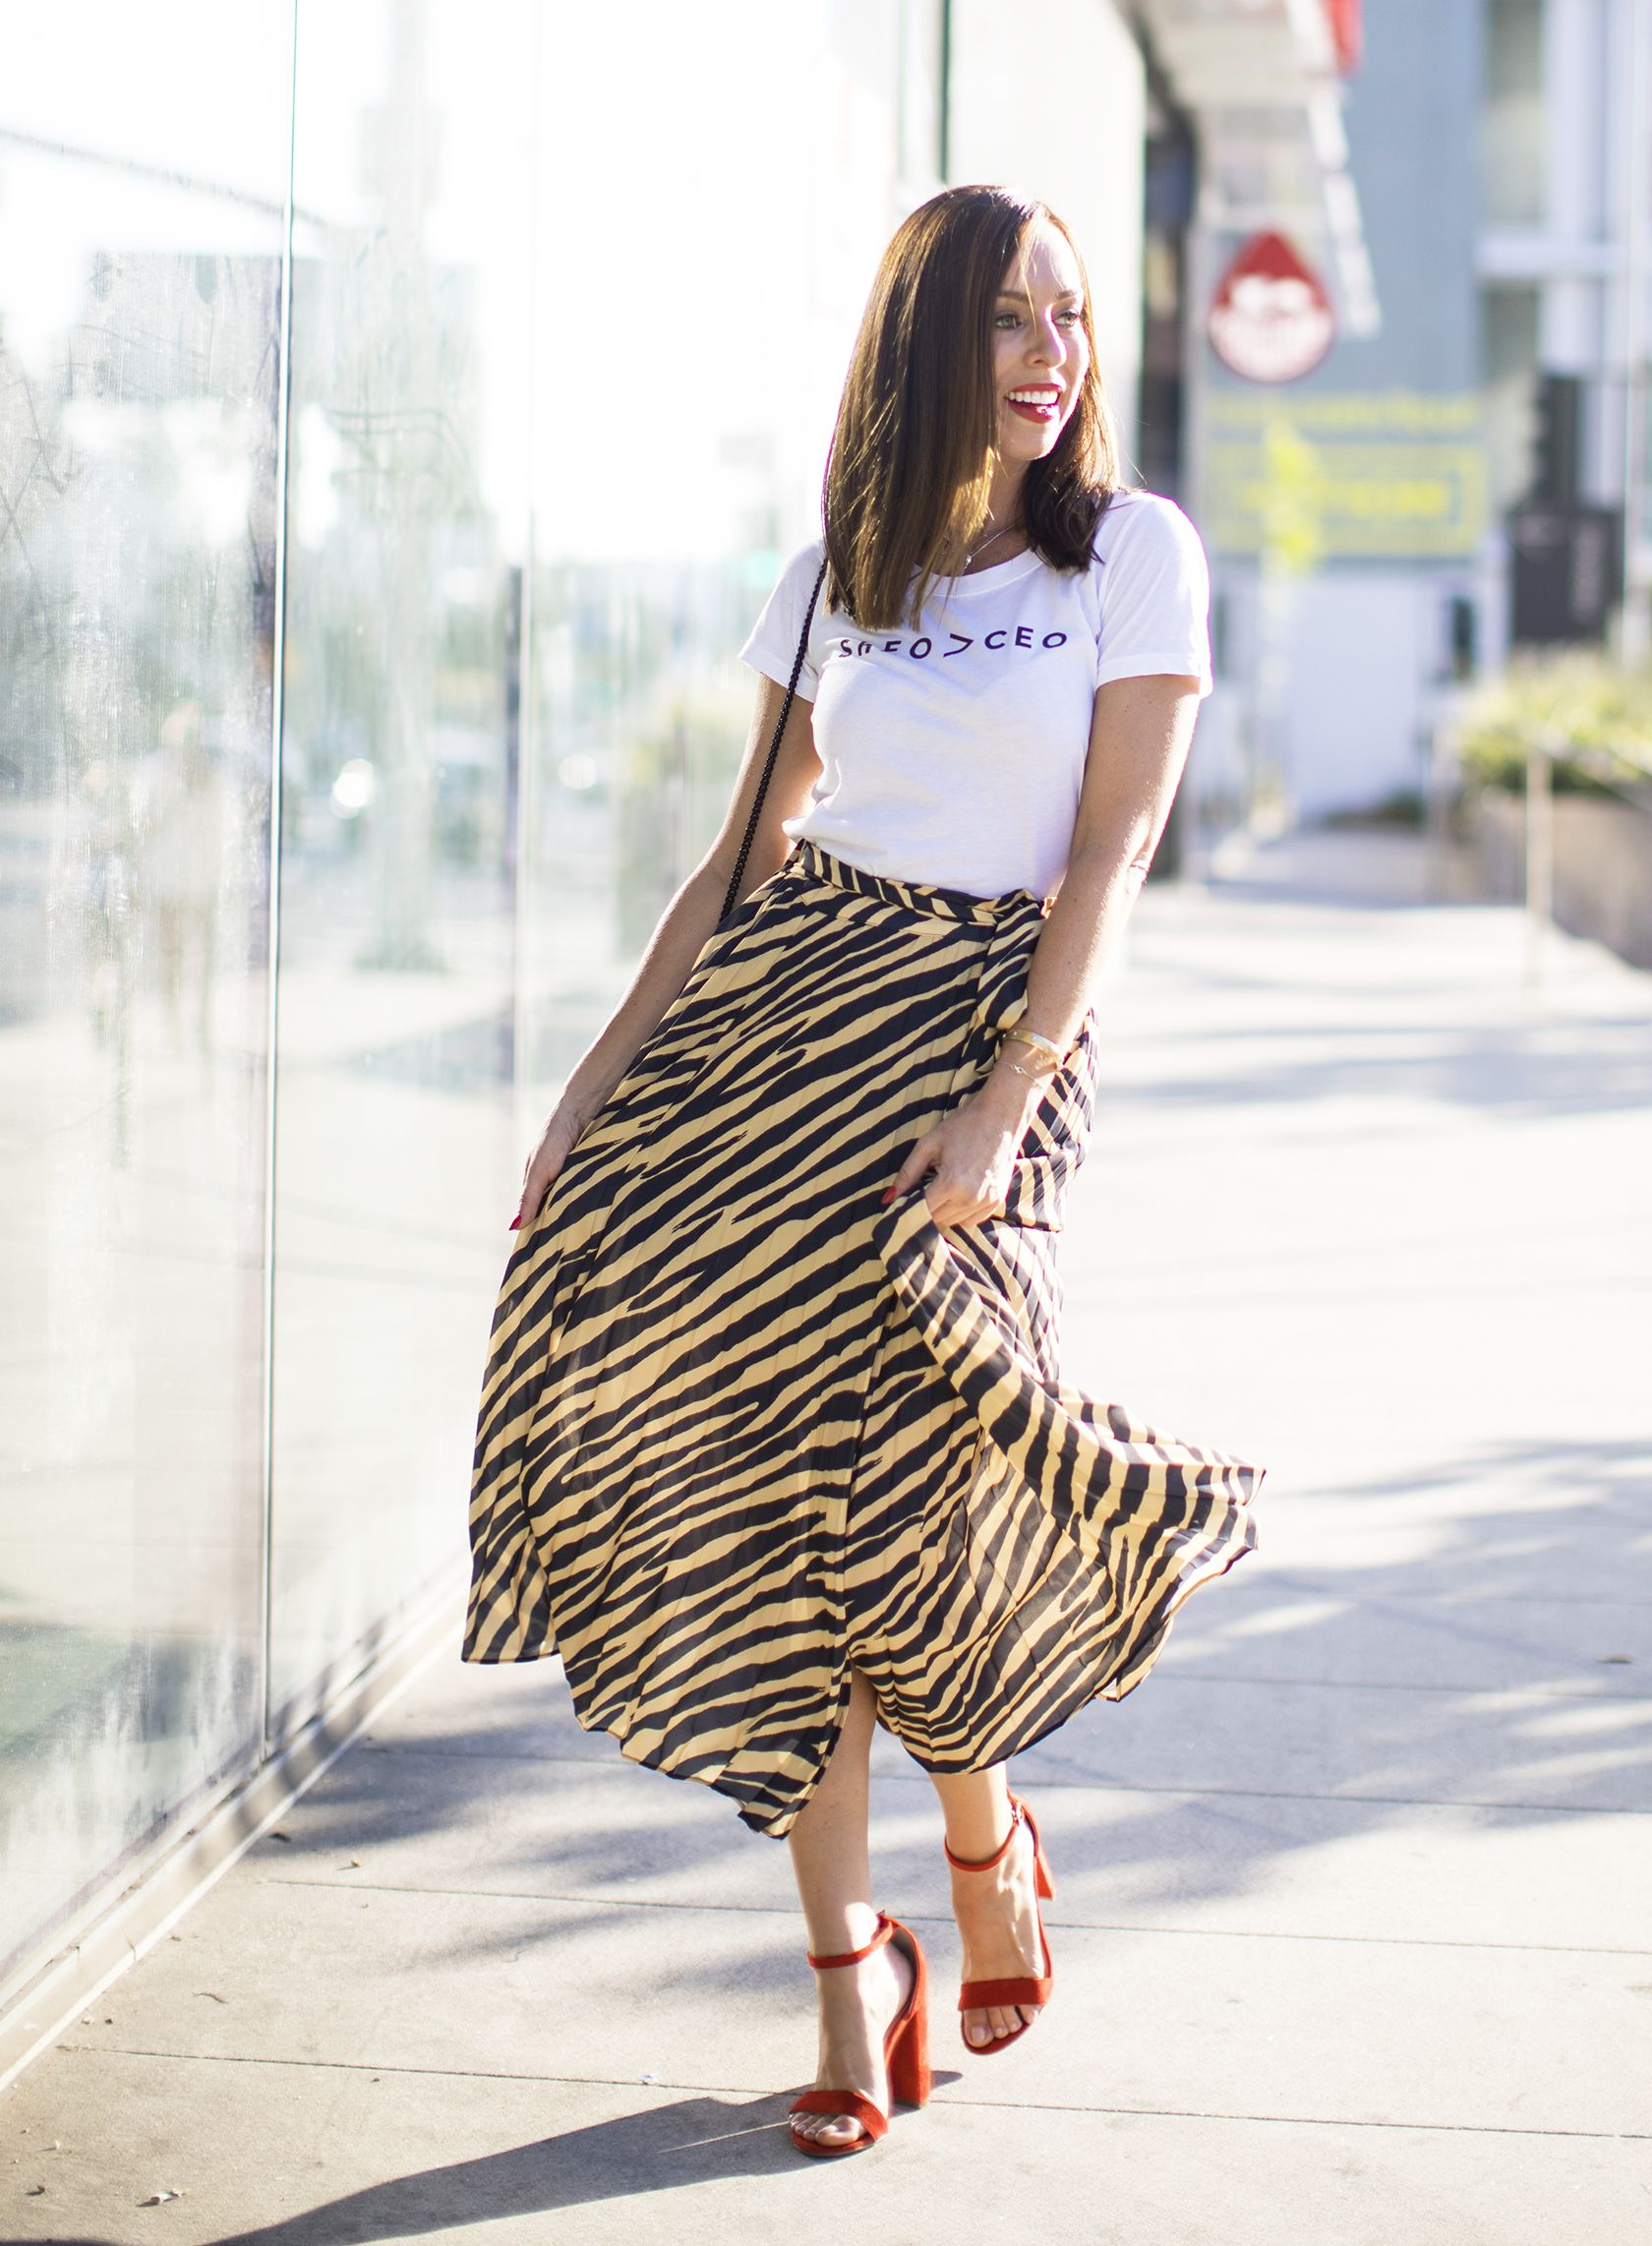 5f29d7587812 Sydne Style shows how to wear graphic tees with zebra print skirt #zebra # skirts #tees #tshirt #graphictee